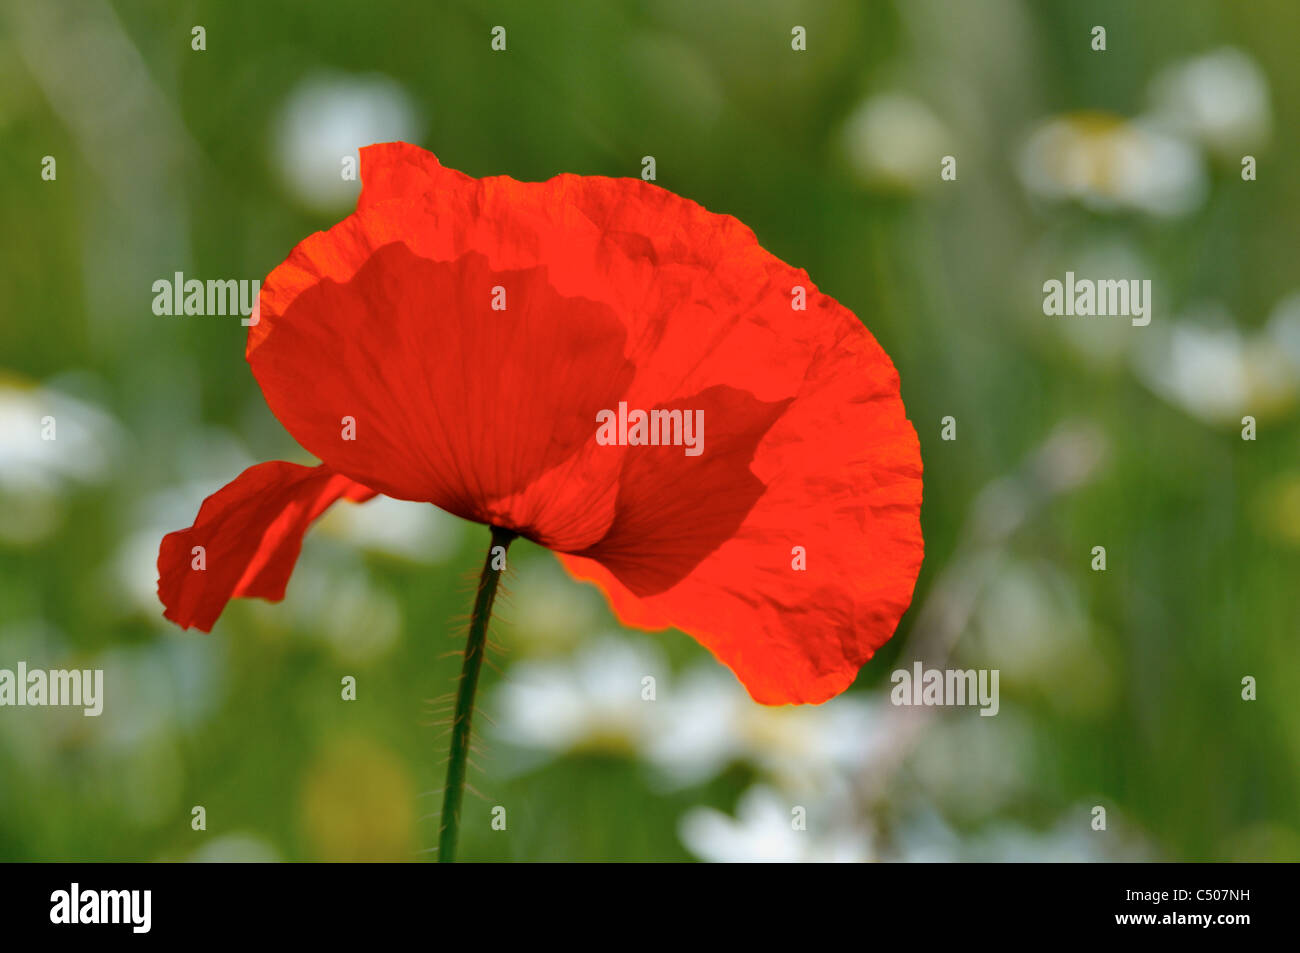 Flower of red poppy with a soft background. - Stock Image